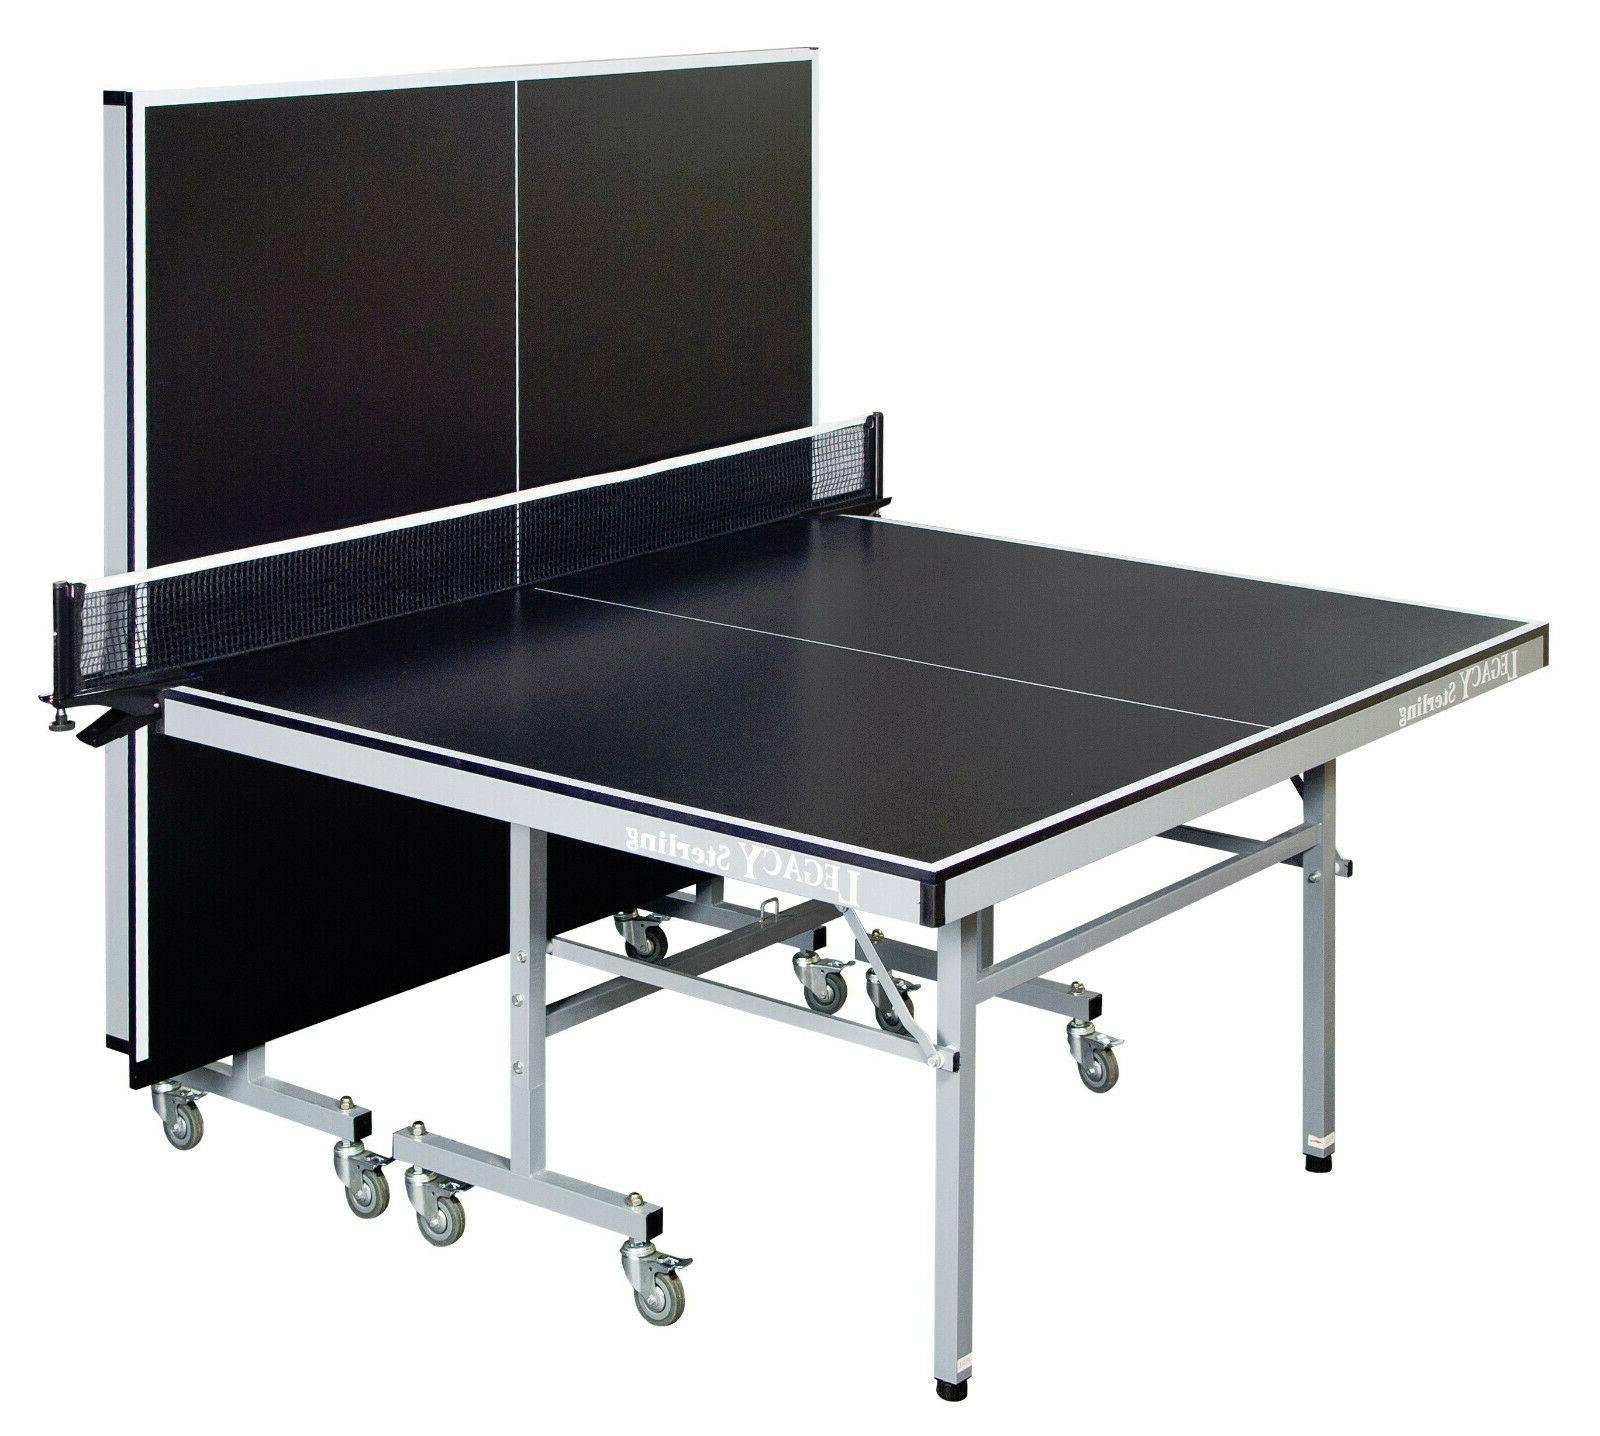 OUTDOOR PONG TABLE TABLE TENNIS MODEL GAME ROOM STORE NJ 07004